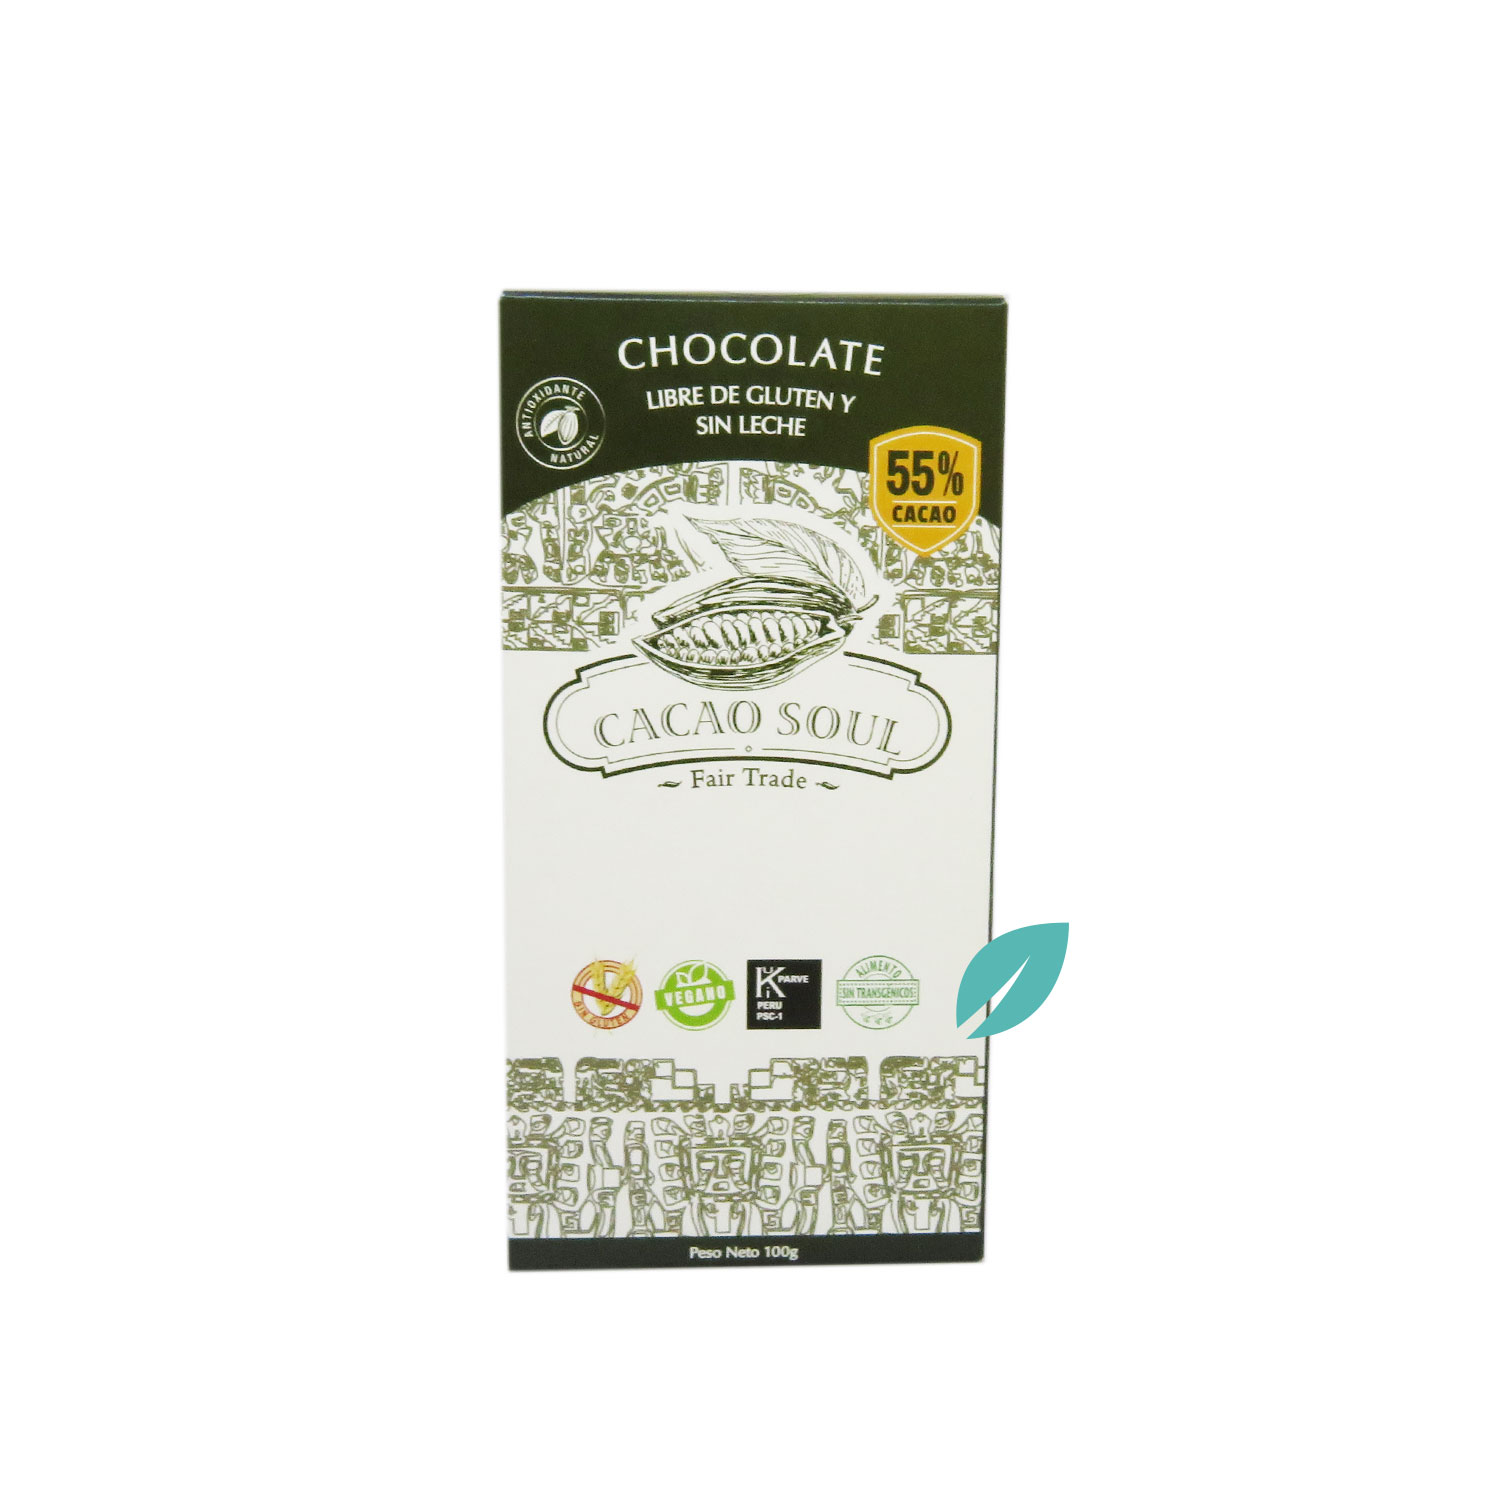 Chocolate en barra 55% cacao 100 grs